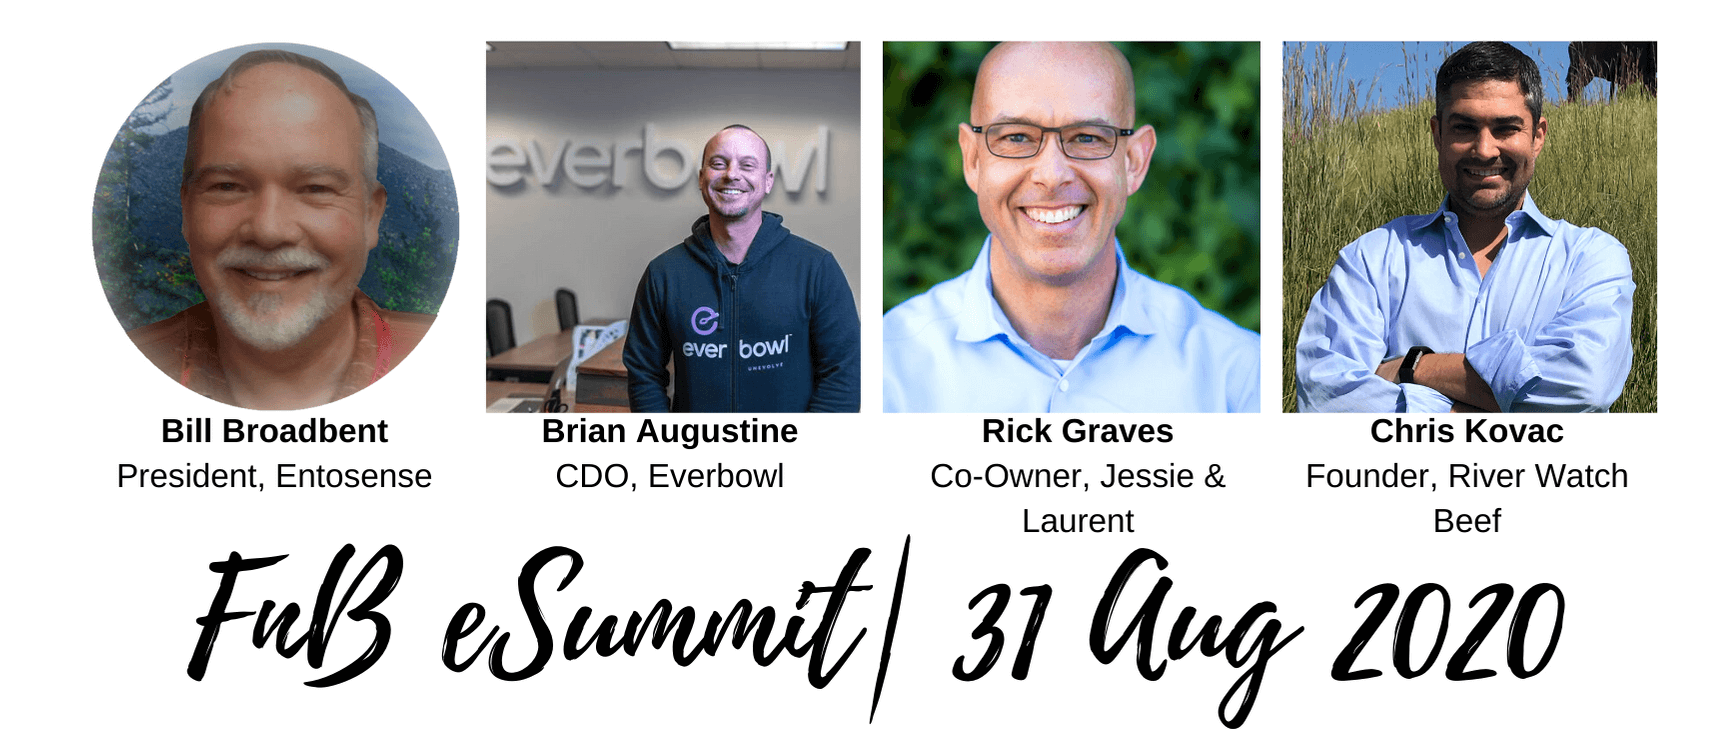 Day 6 – Session 2: F&B e-Summit 2020 (Aug 31st, 2020)